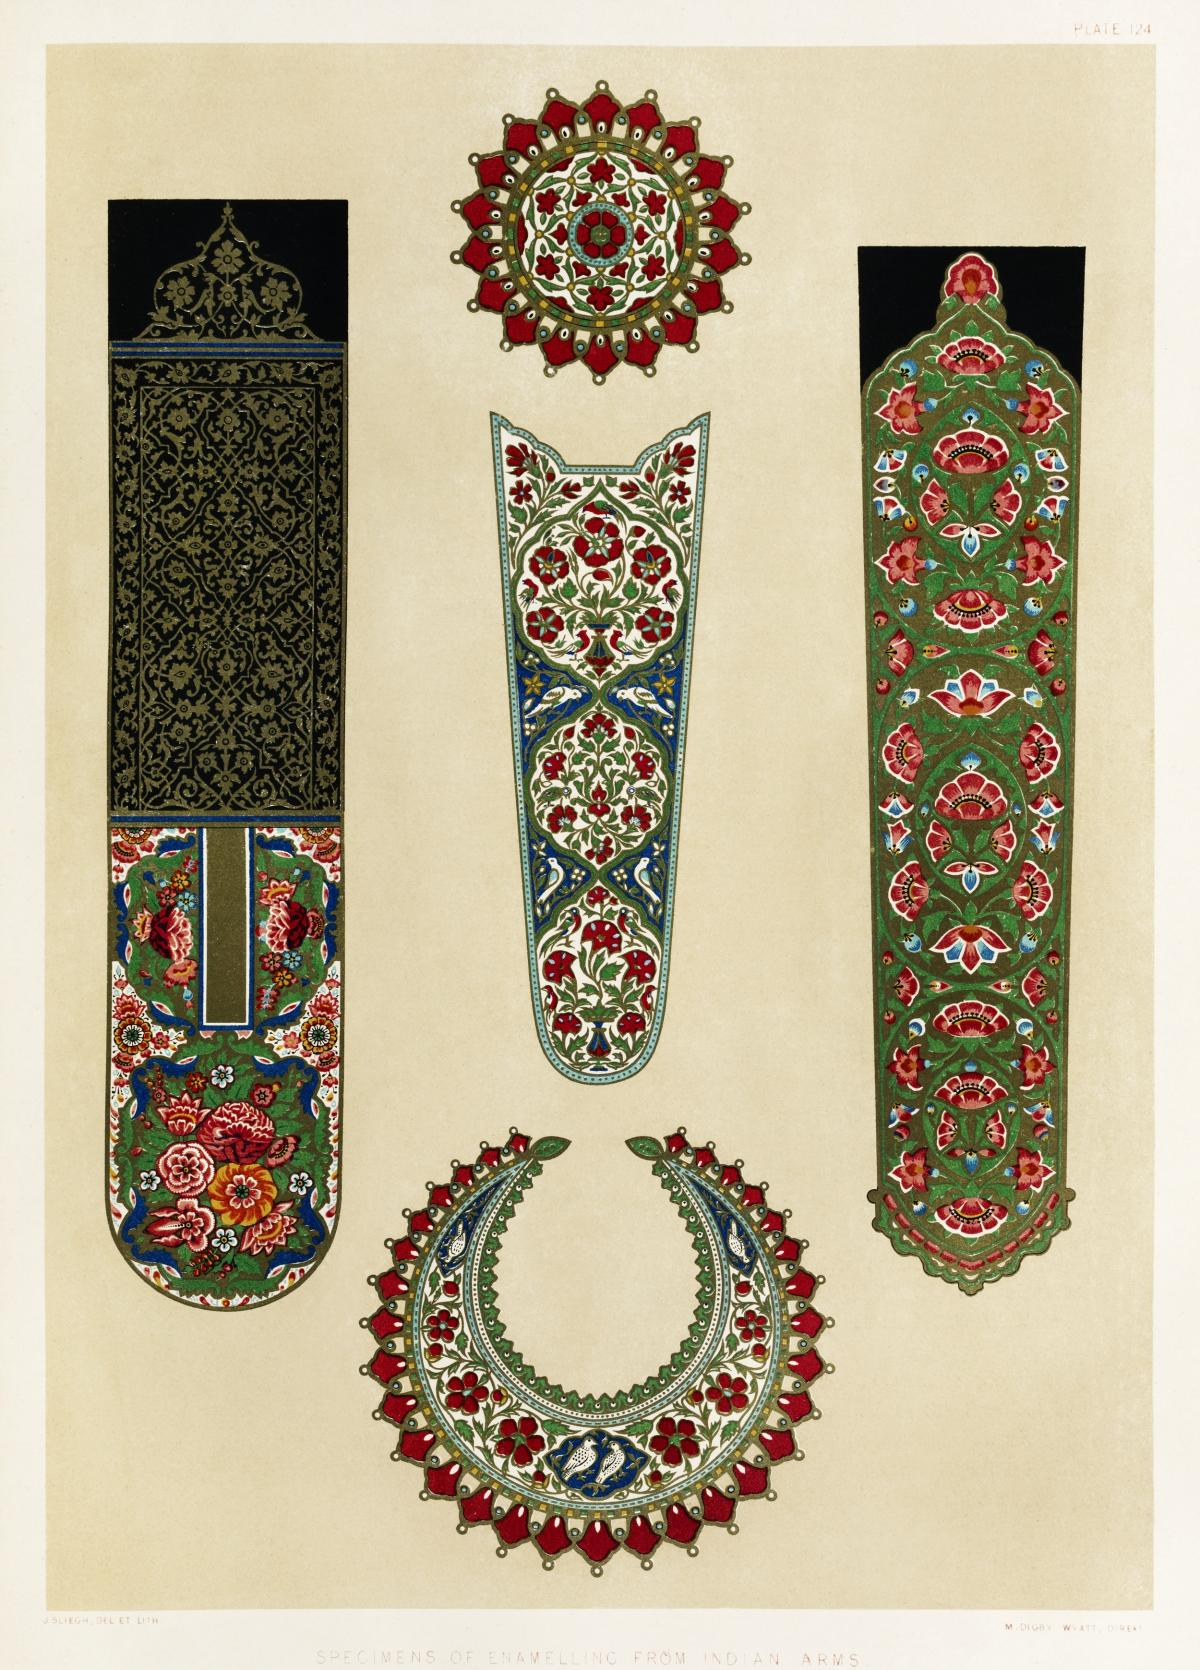 Specimens of enamelling from Indian arms from the Industrial arts of the Nineteenth Century (1851-1853) by Sir Matthew Digby wyatt (1820-1877).